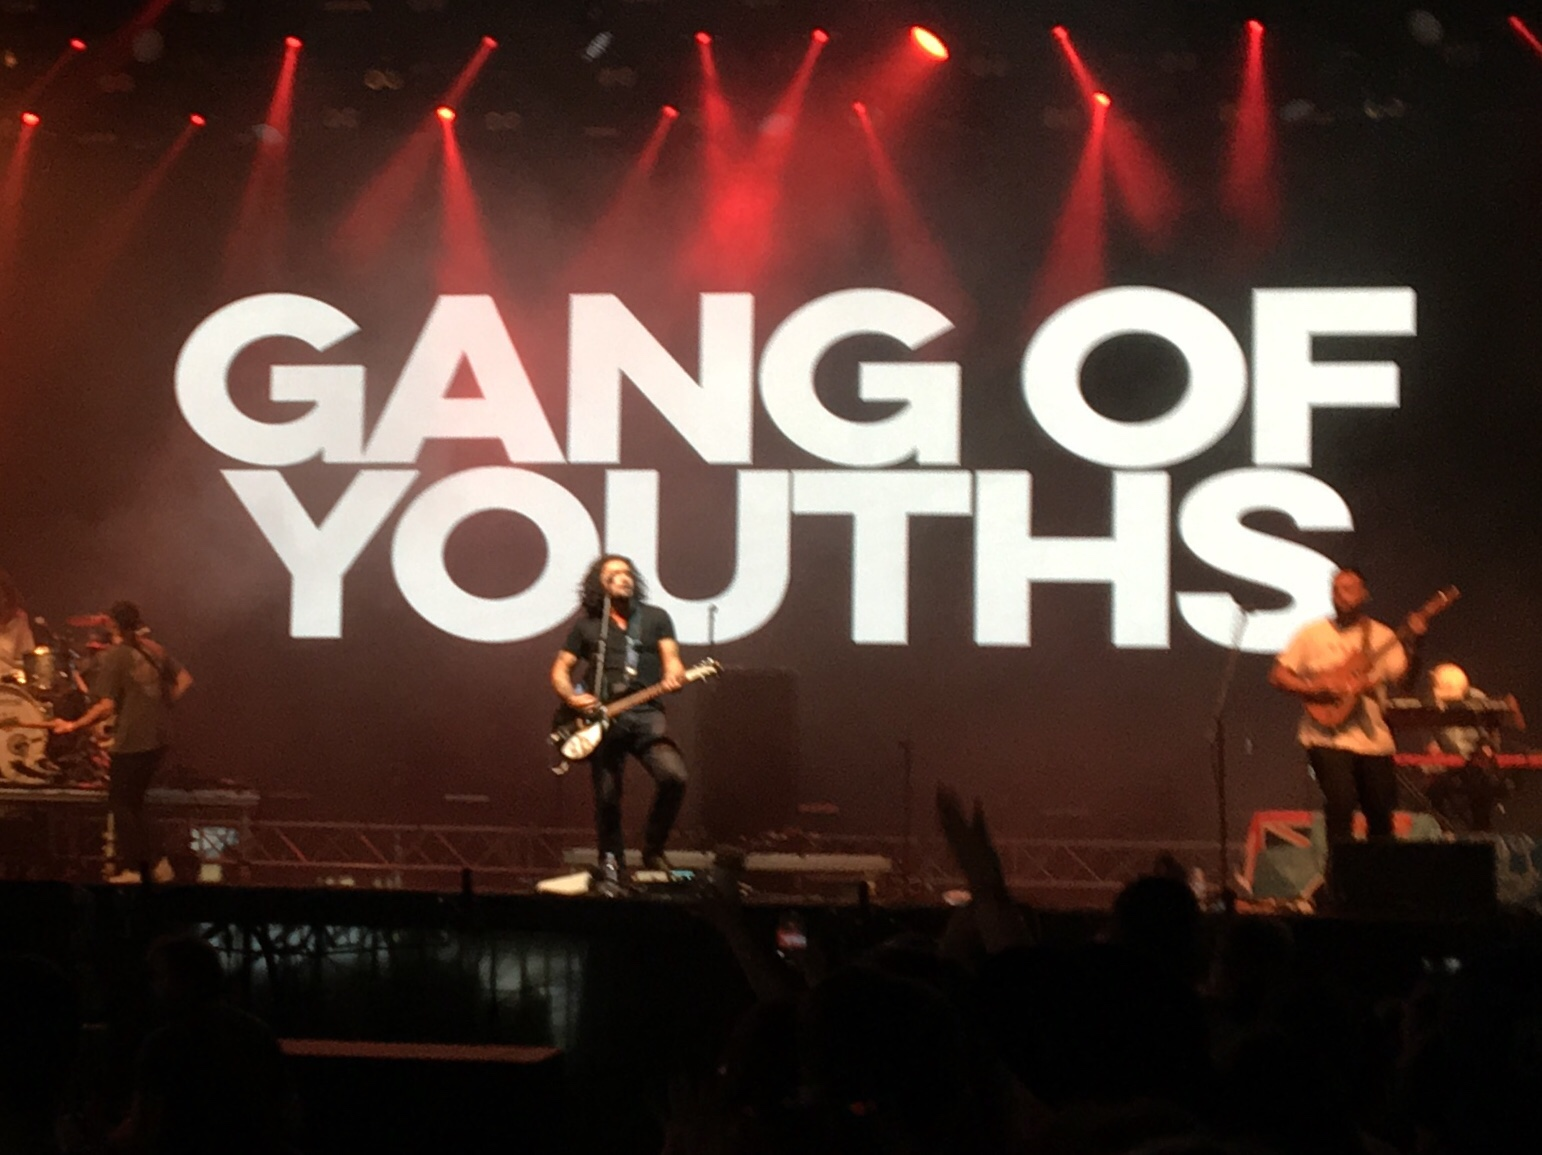 Gang of Youths, Sziget Festival 2019 Budapest